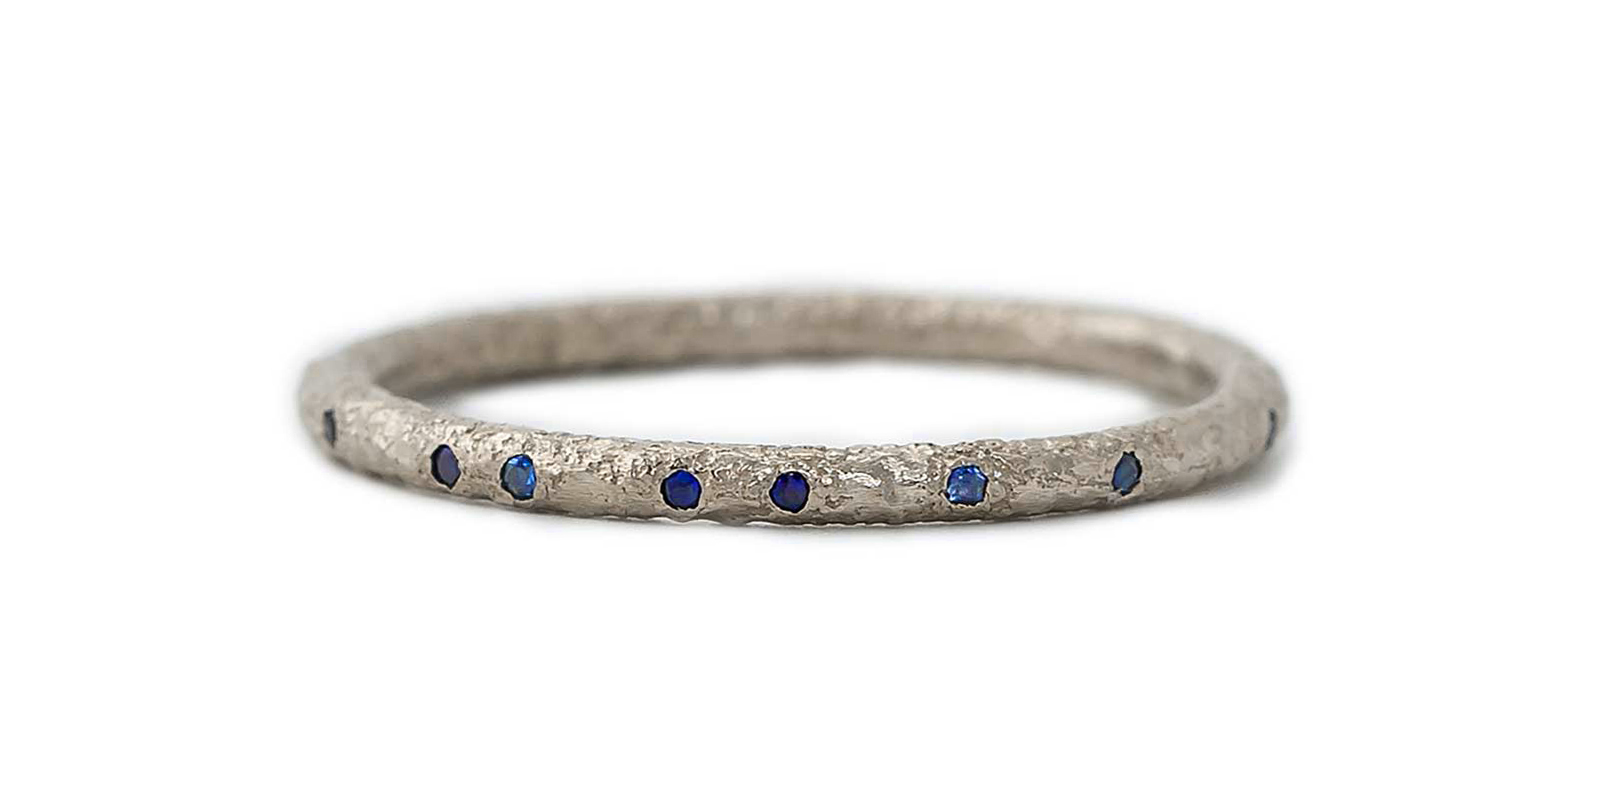 Scattered Eternity Ring – Sapphire, 18ct White Gold